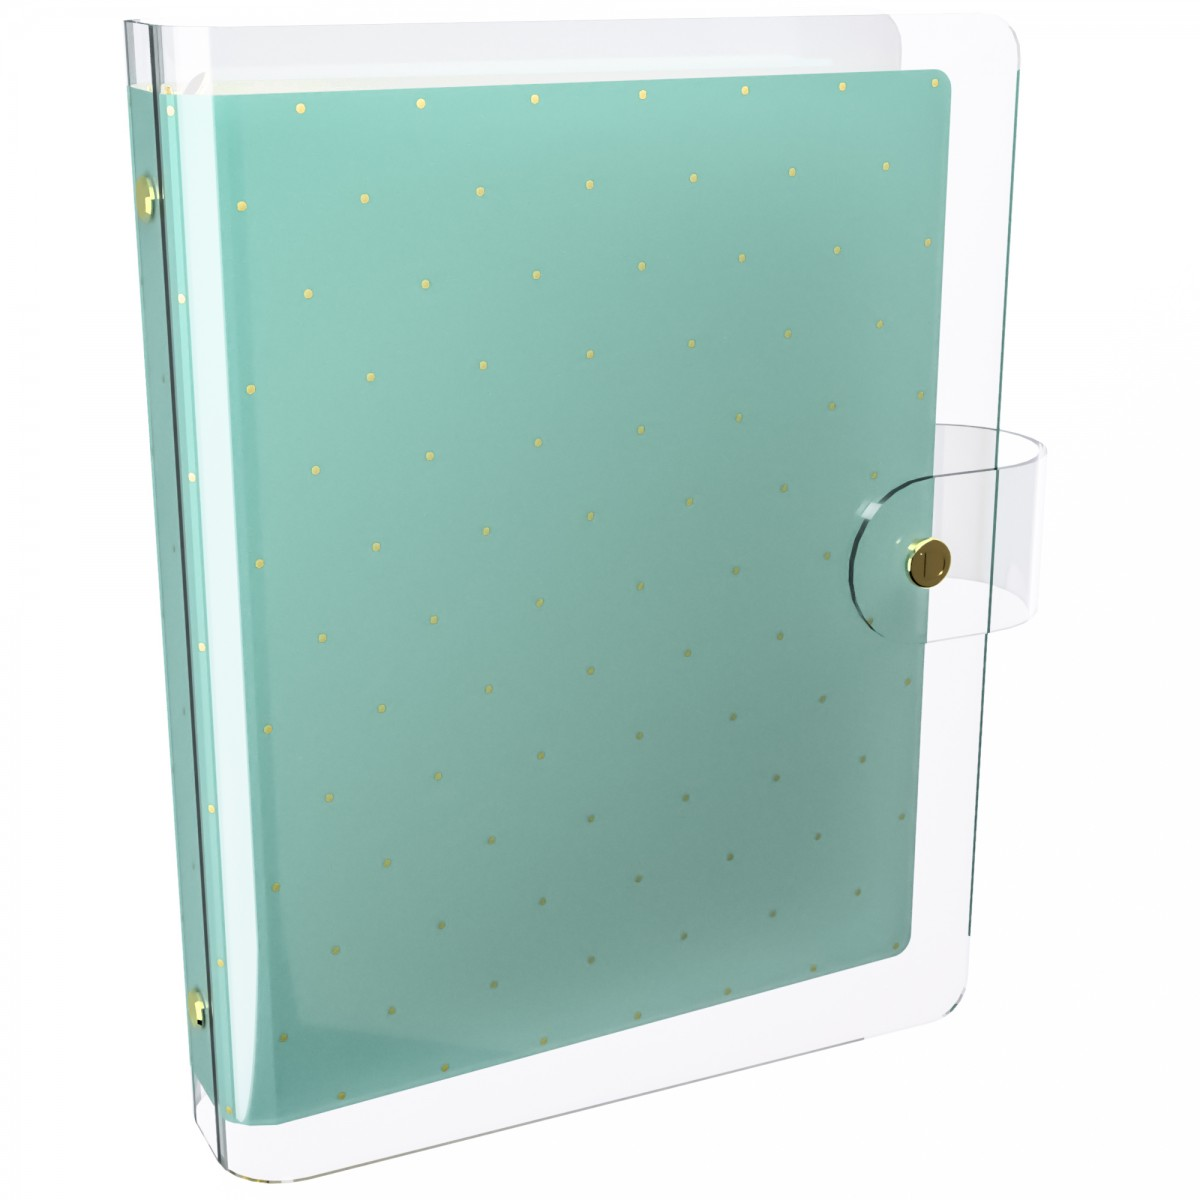 DISCAGENDA CLARITY CLEAR PVC PLANNER COVER - MINT WITH GOLD POLKA DOTS, RINGBOUND, A5 SIZE